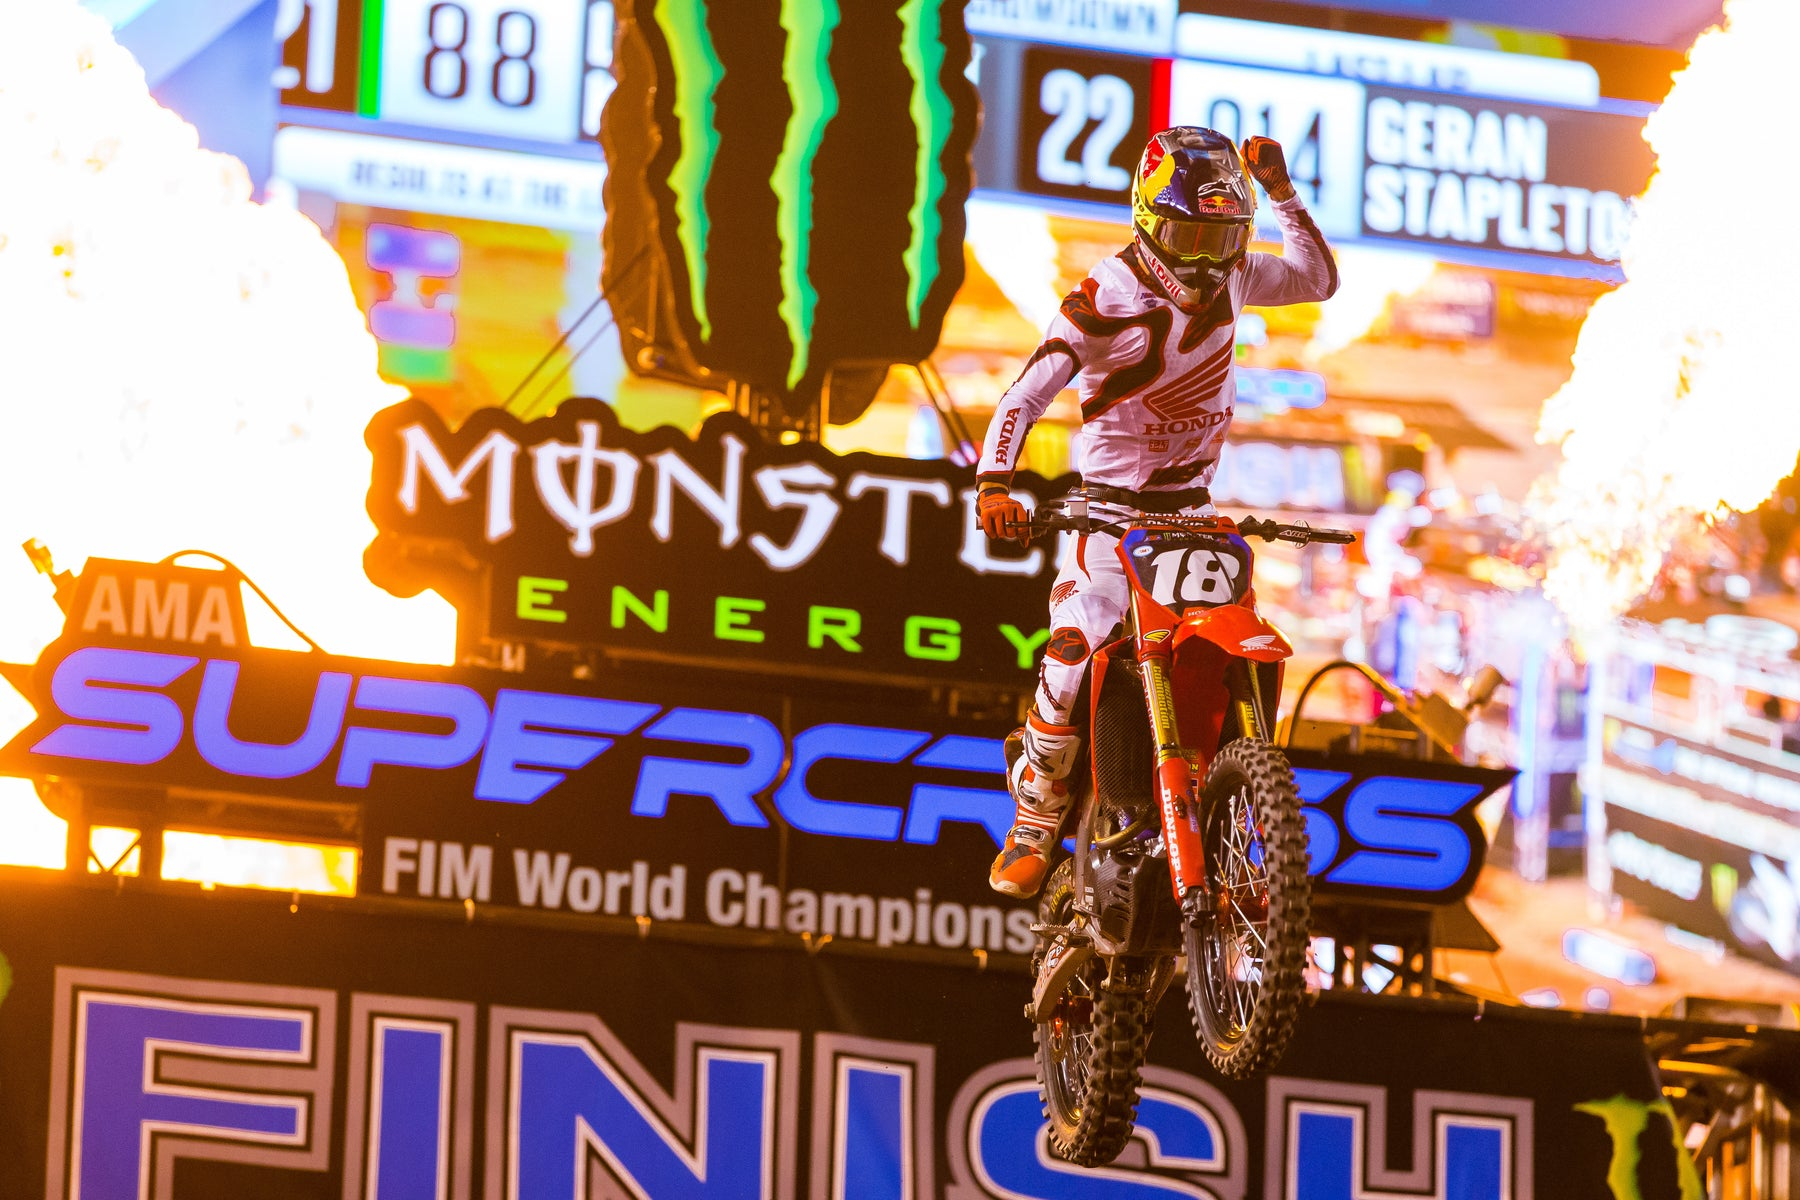 ALPINESTARS SALT LAKE CITY 2 (EAST/WEST SHOWDOWN) 250SX MAIN EVENT PODIUM LOCK-OUT AS JETT LAWRENCE WINS;   COLT NICHOLS SECOND, HUNTER LAWRENCE THIRD